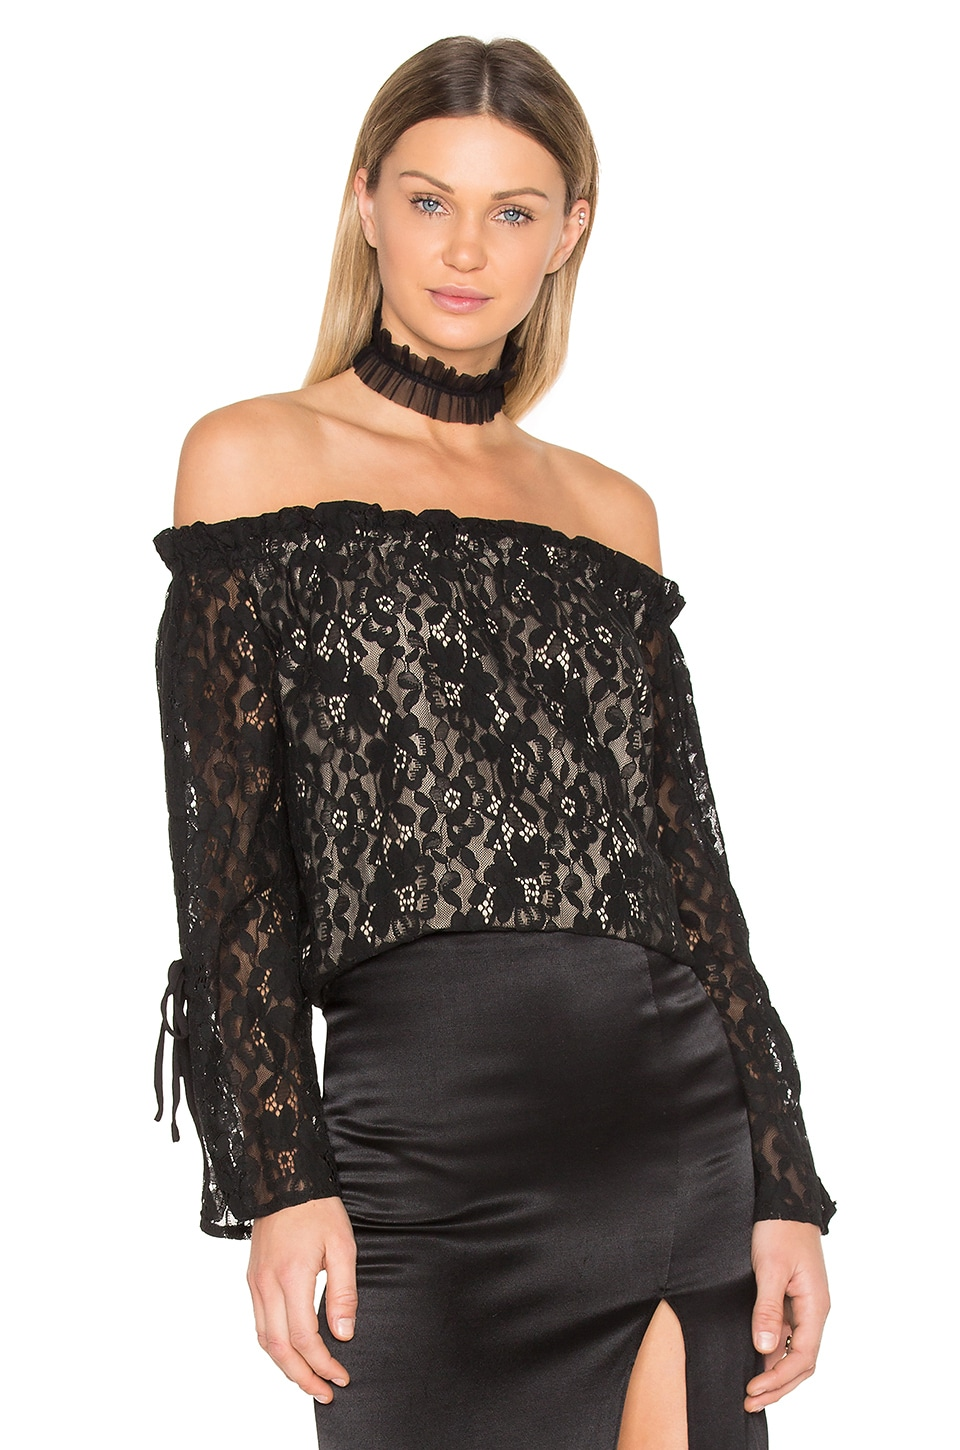 Lace Off the Shoulder Top by J.O.A.